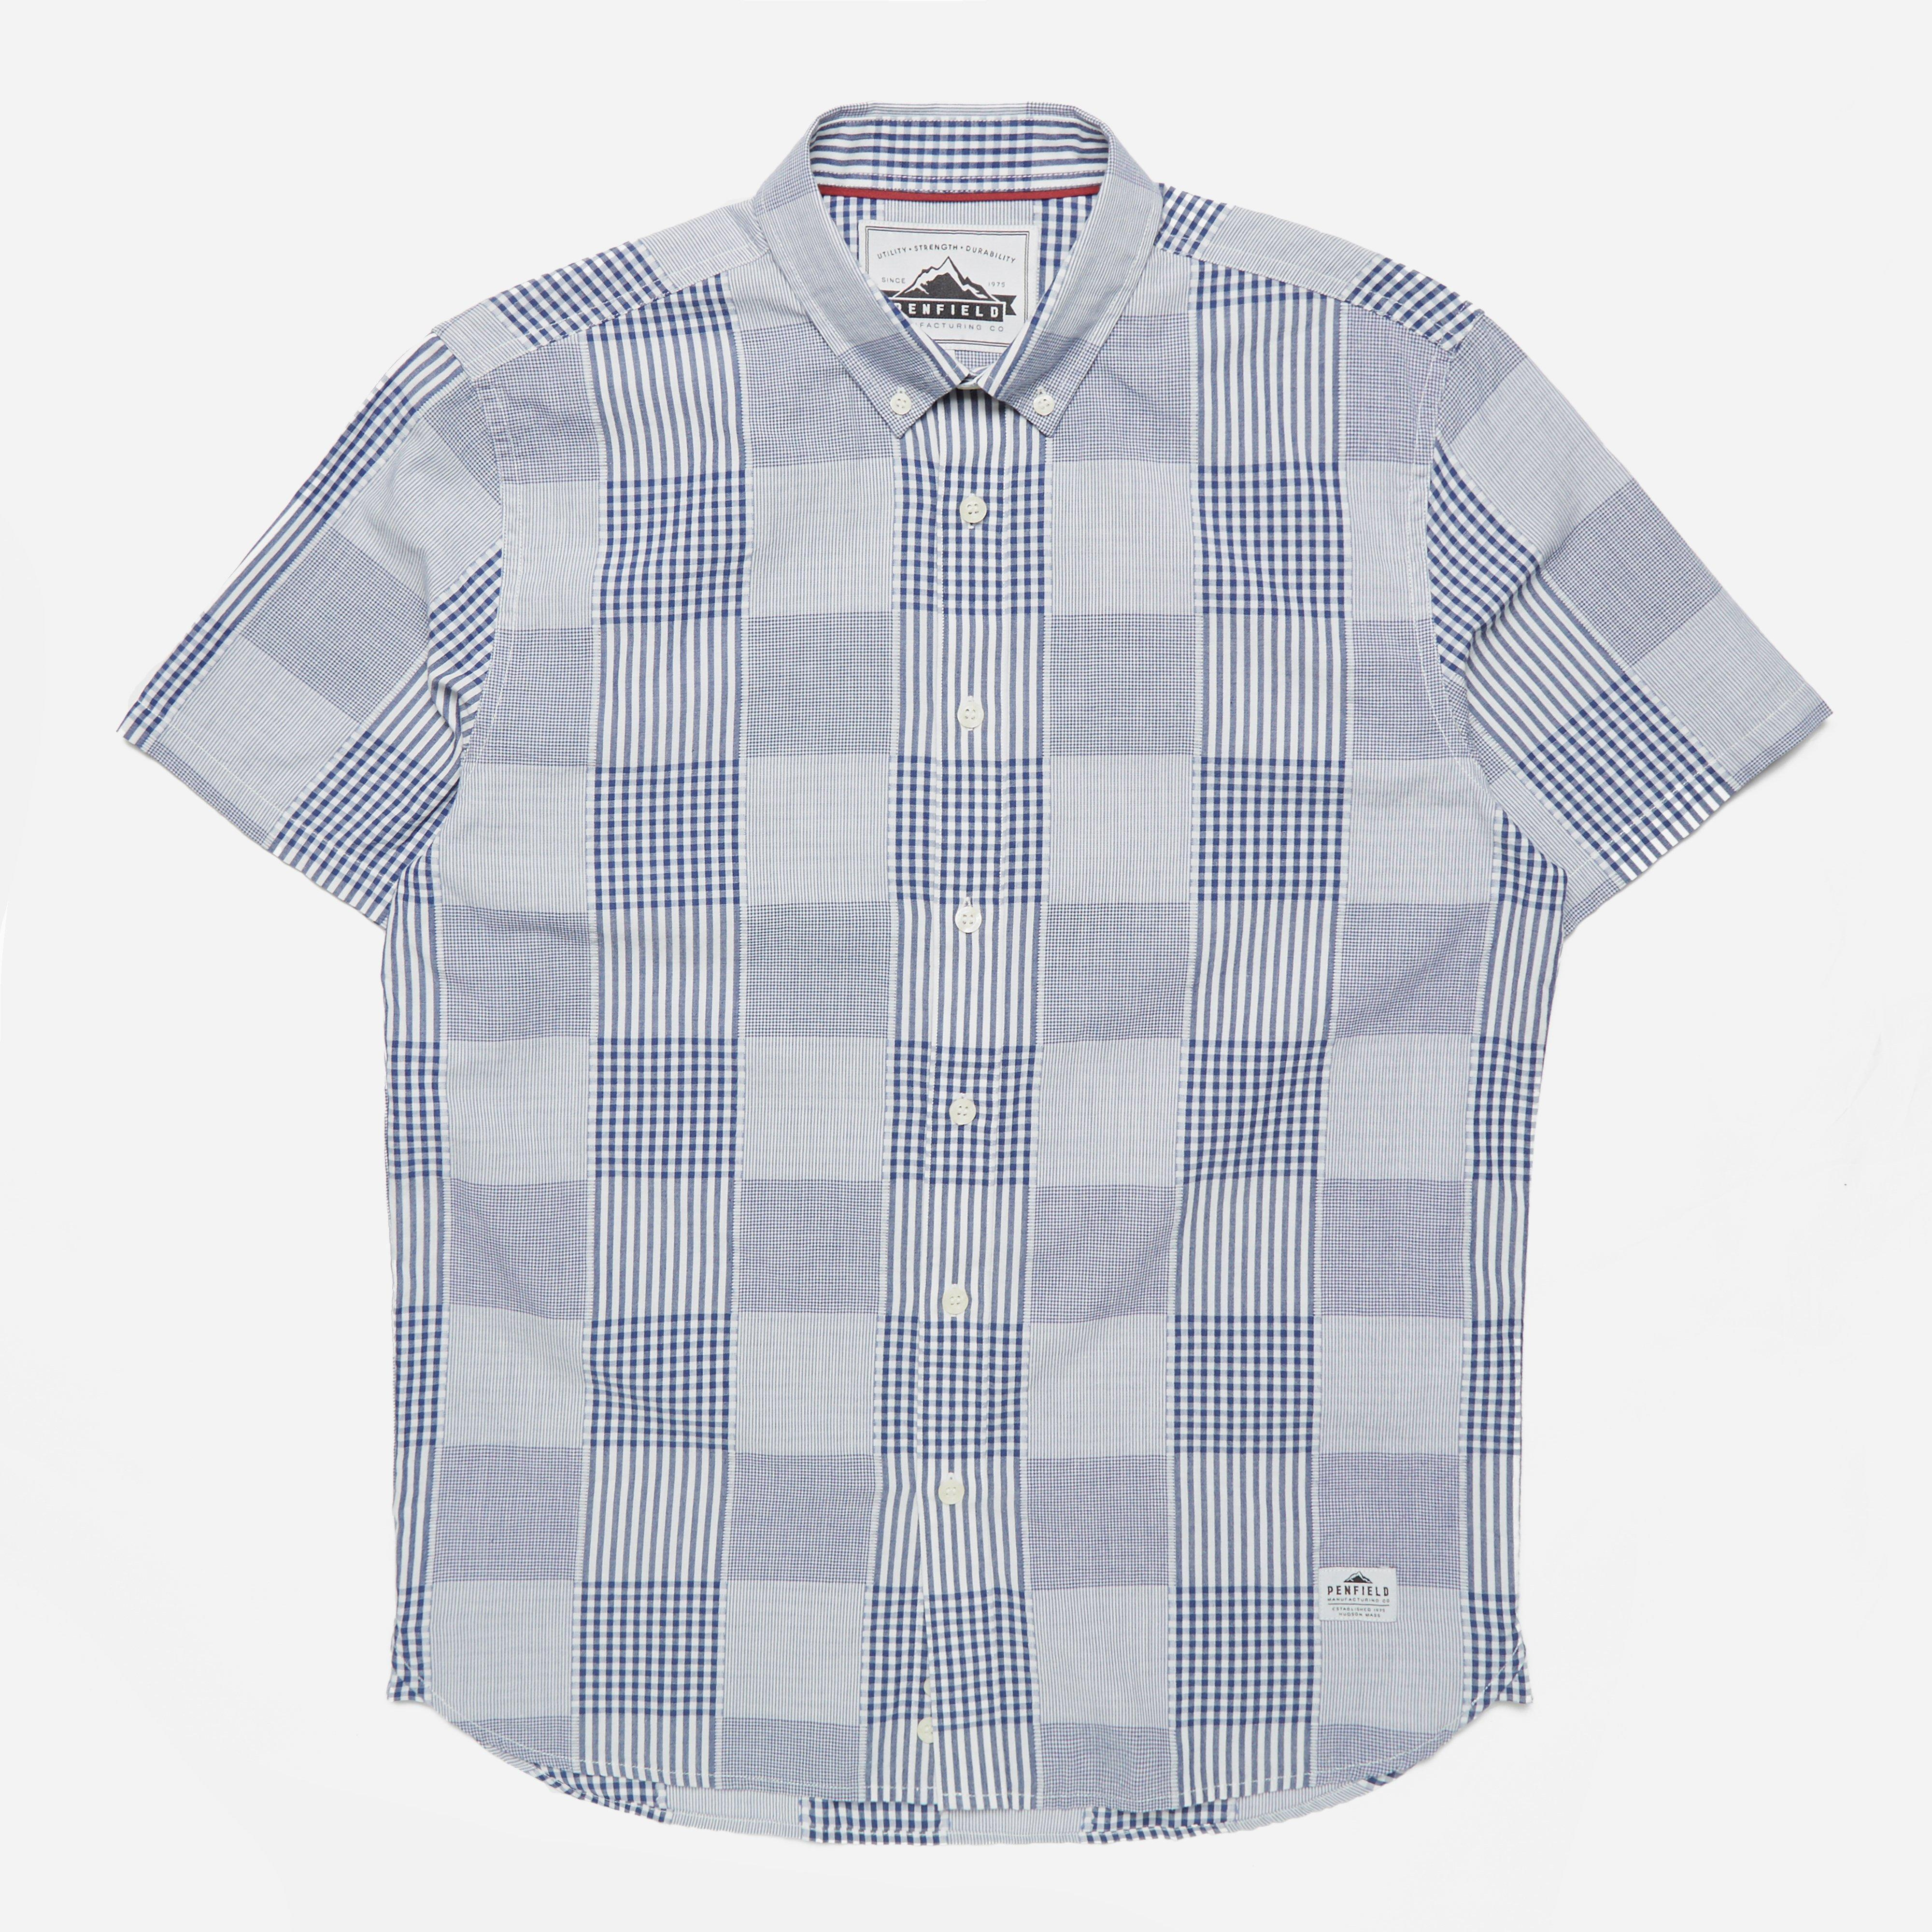 Penfield Penrose Check Shirt